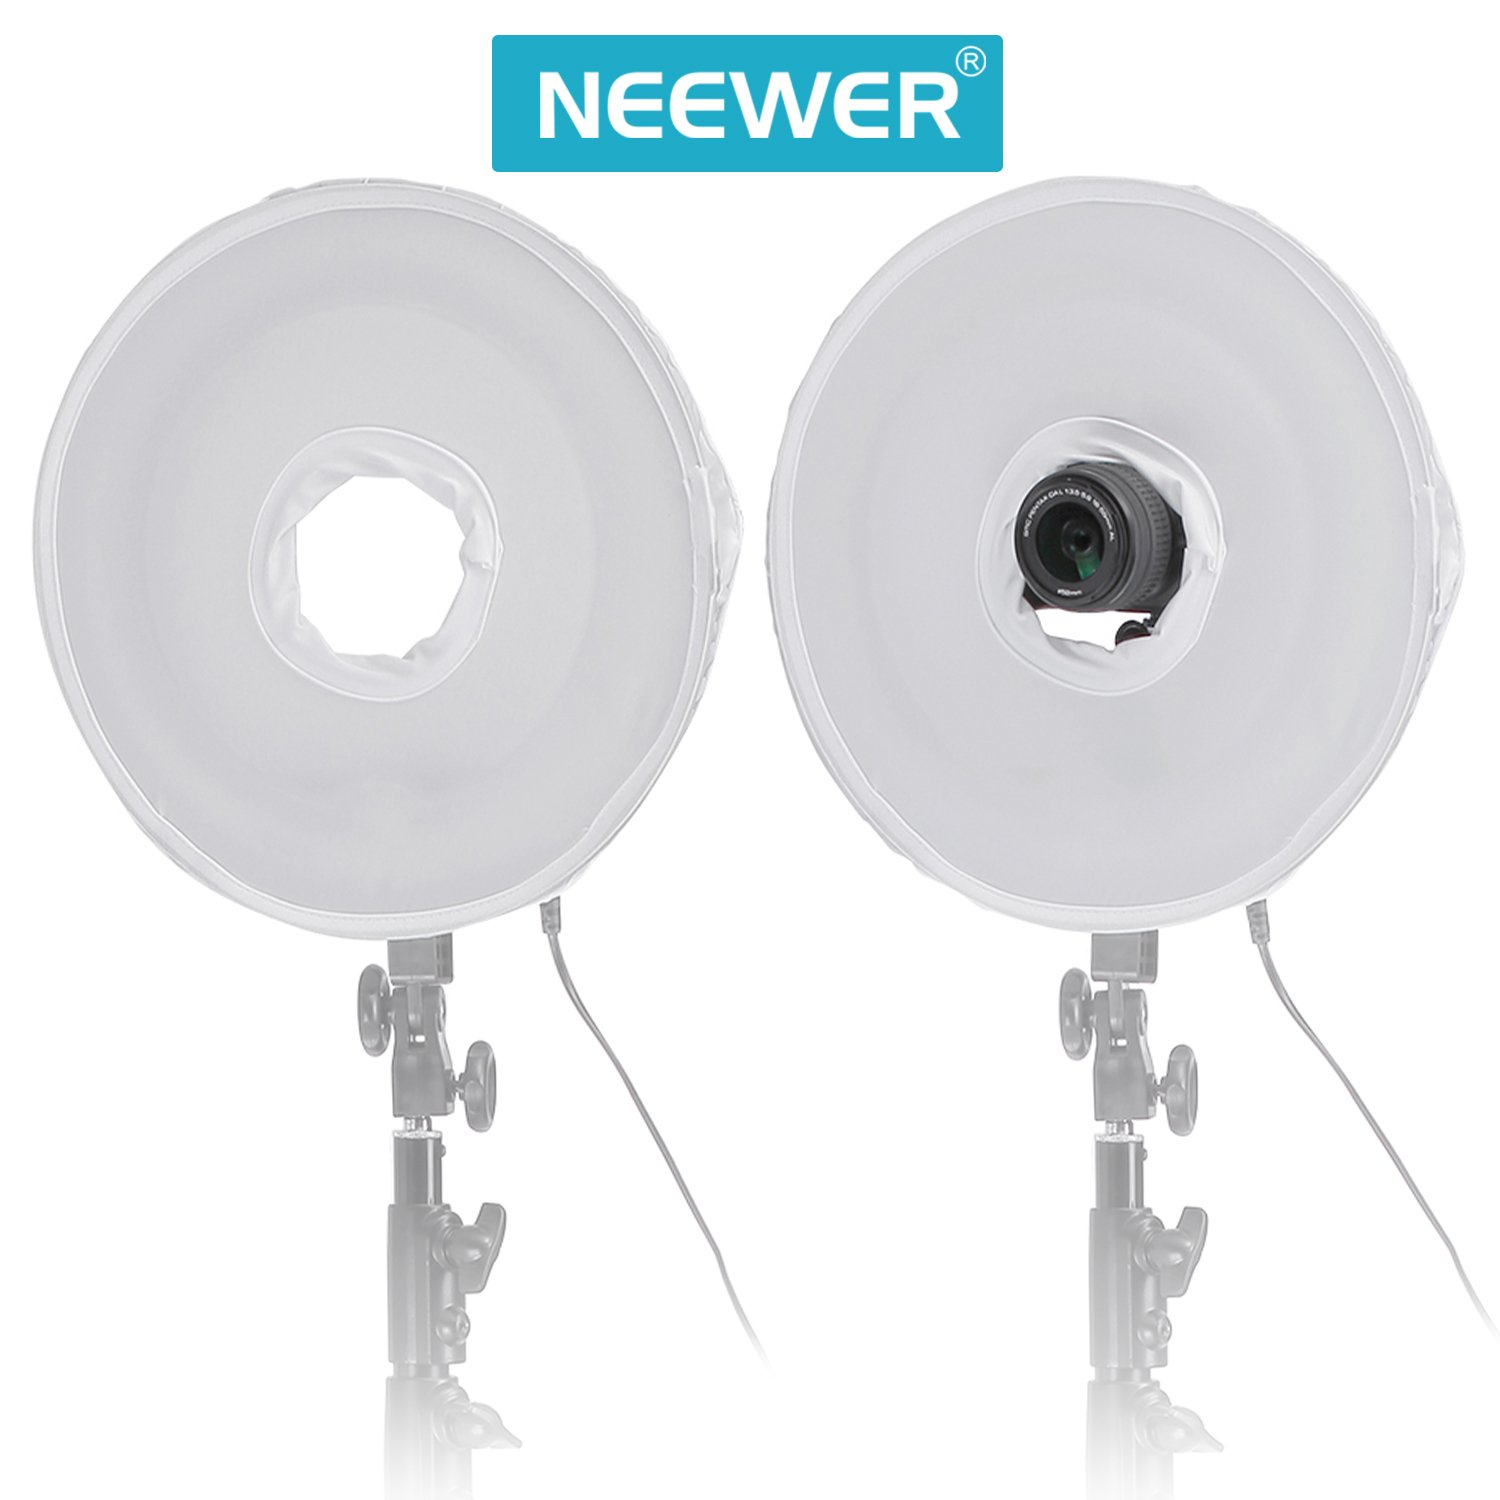 Neewer 35cm/14inch Collapsible Photography Video Light Softbox Diffuser for Neewer 400W Dimmable Ring Fluorescent Ring Light Flash Light